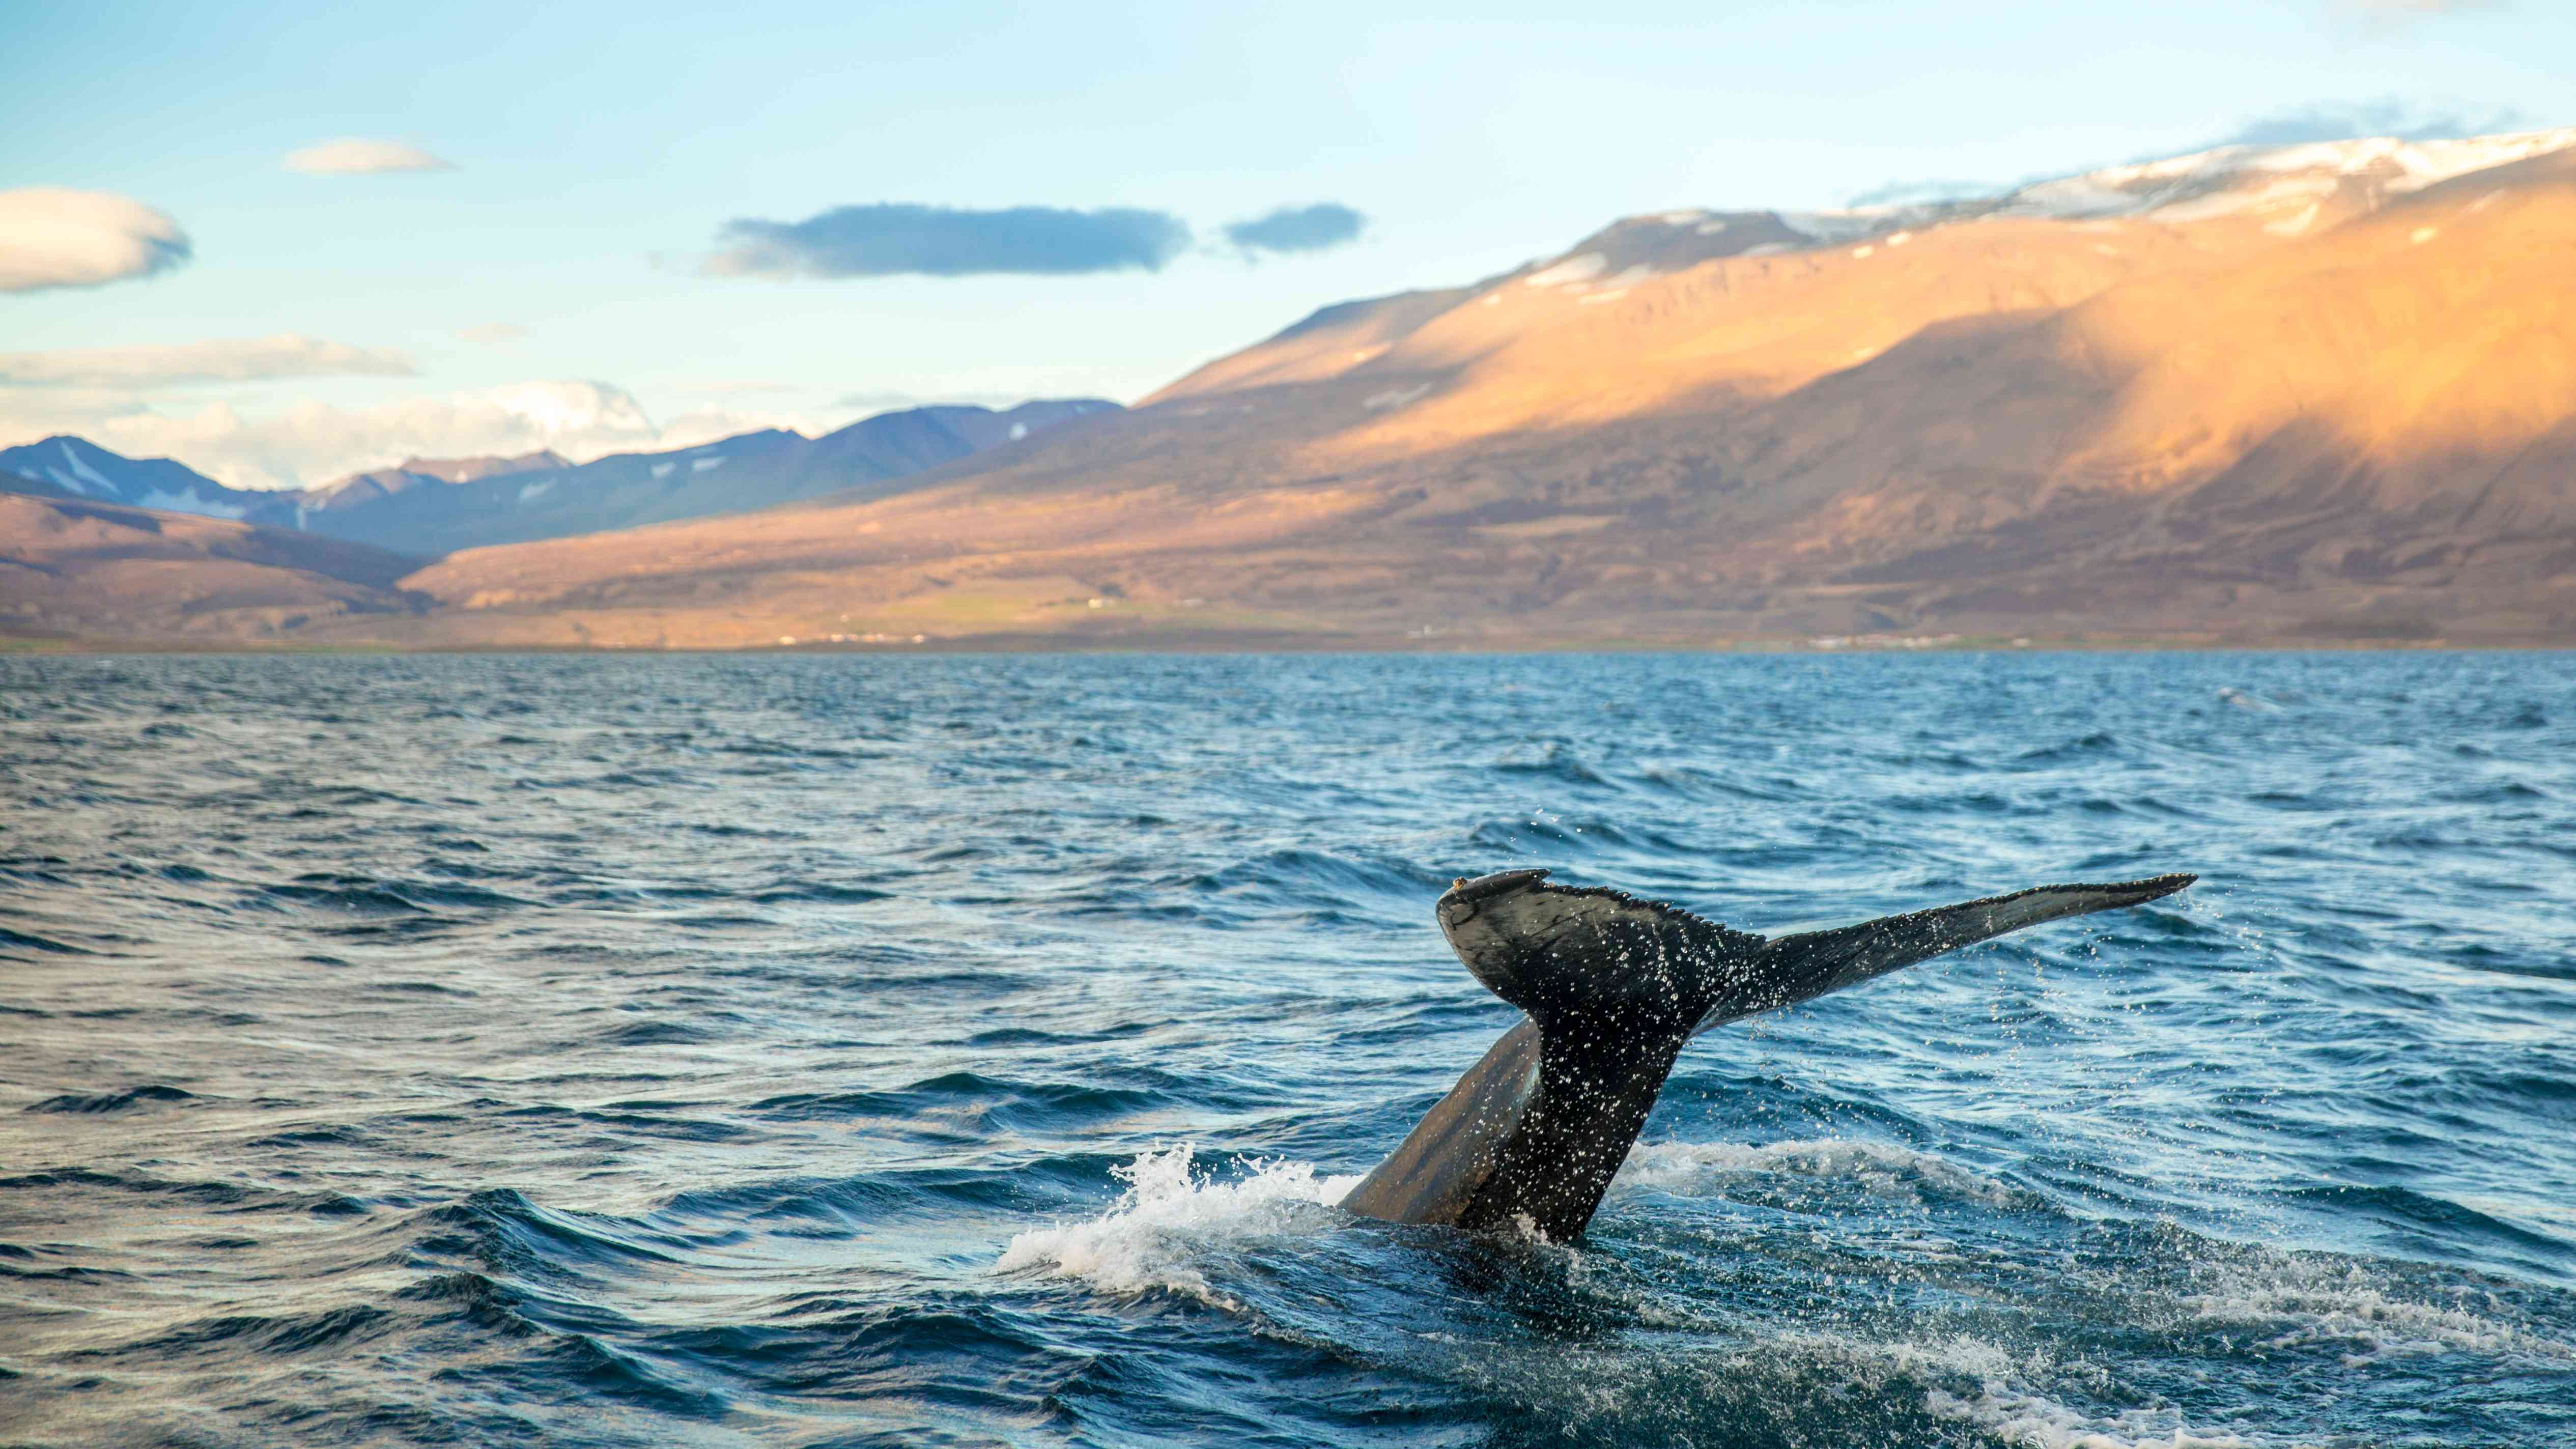 Whale In Sea Against Mountains